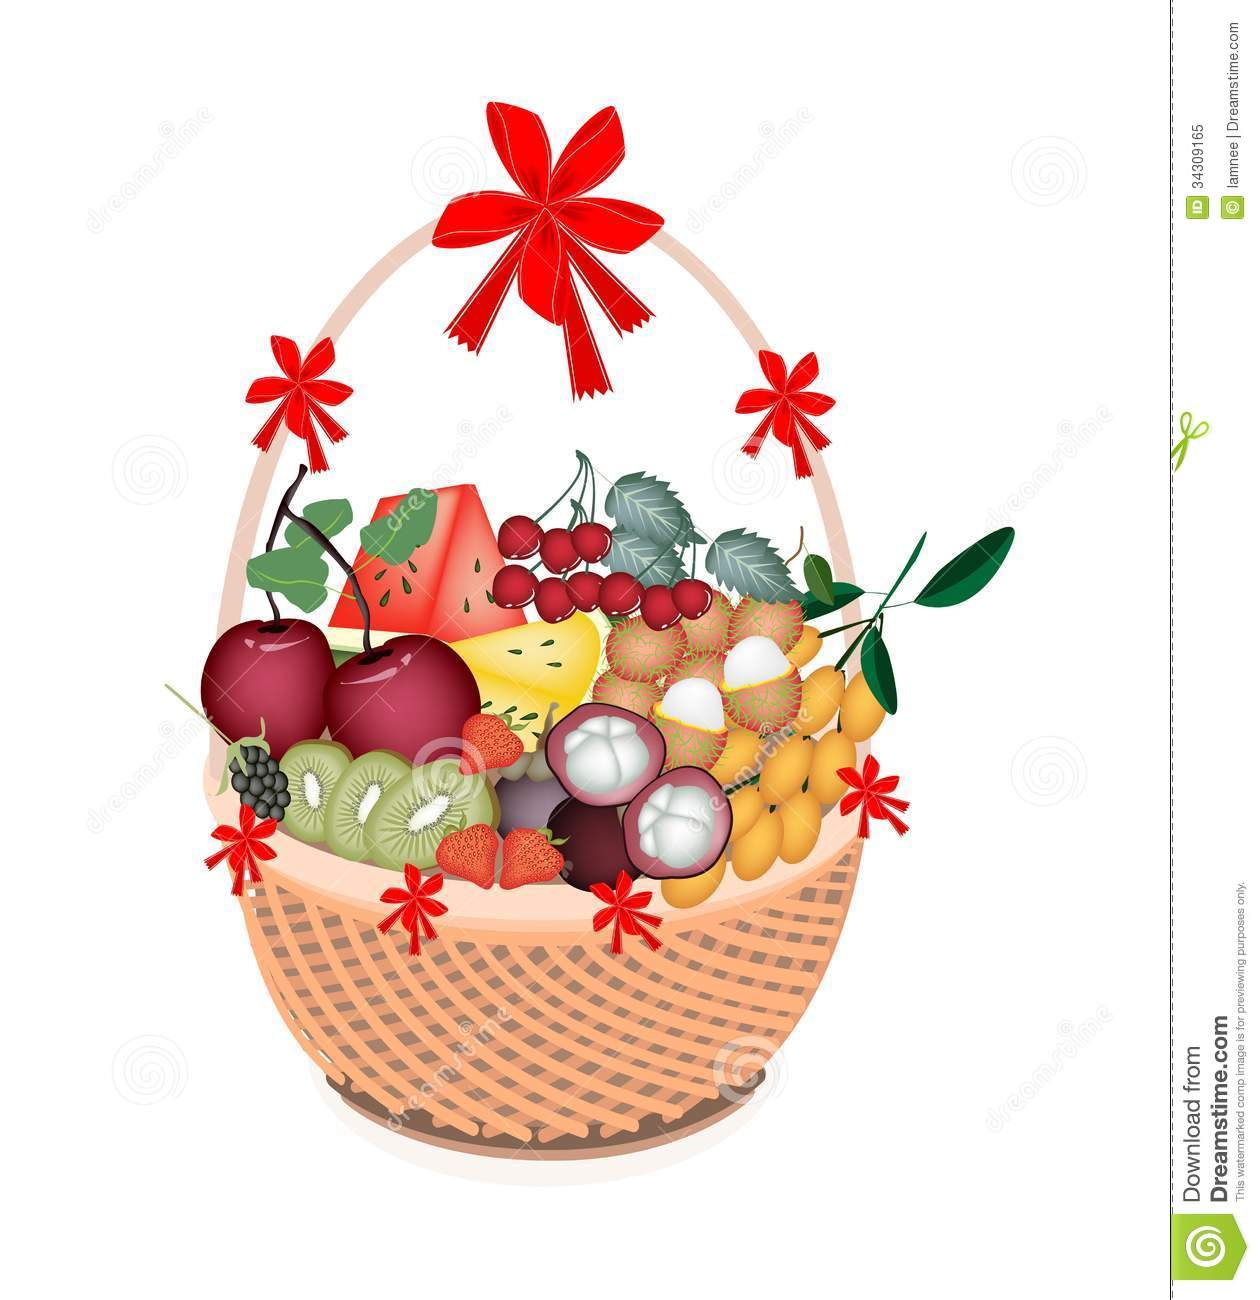 Health and nutrition fruit in gift basket stock vector